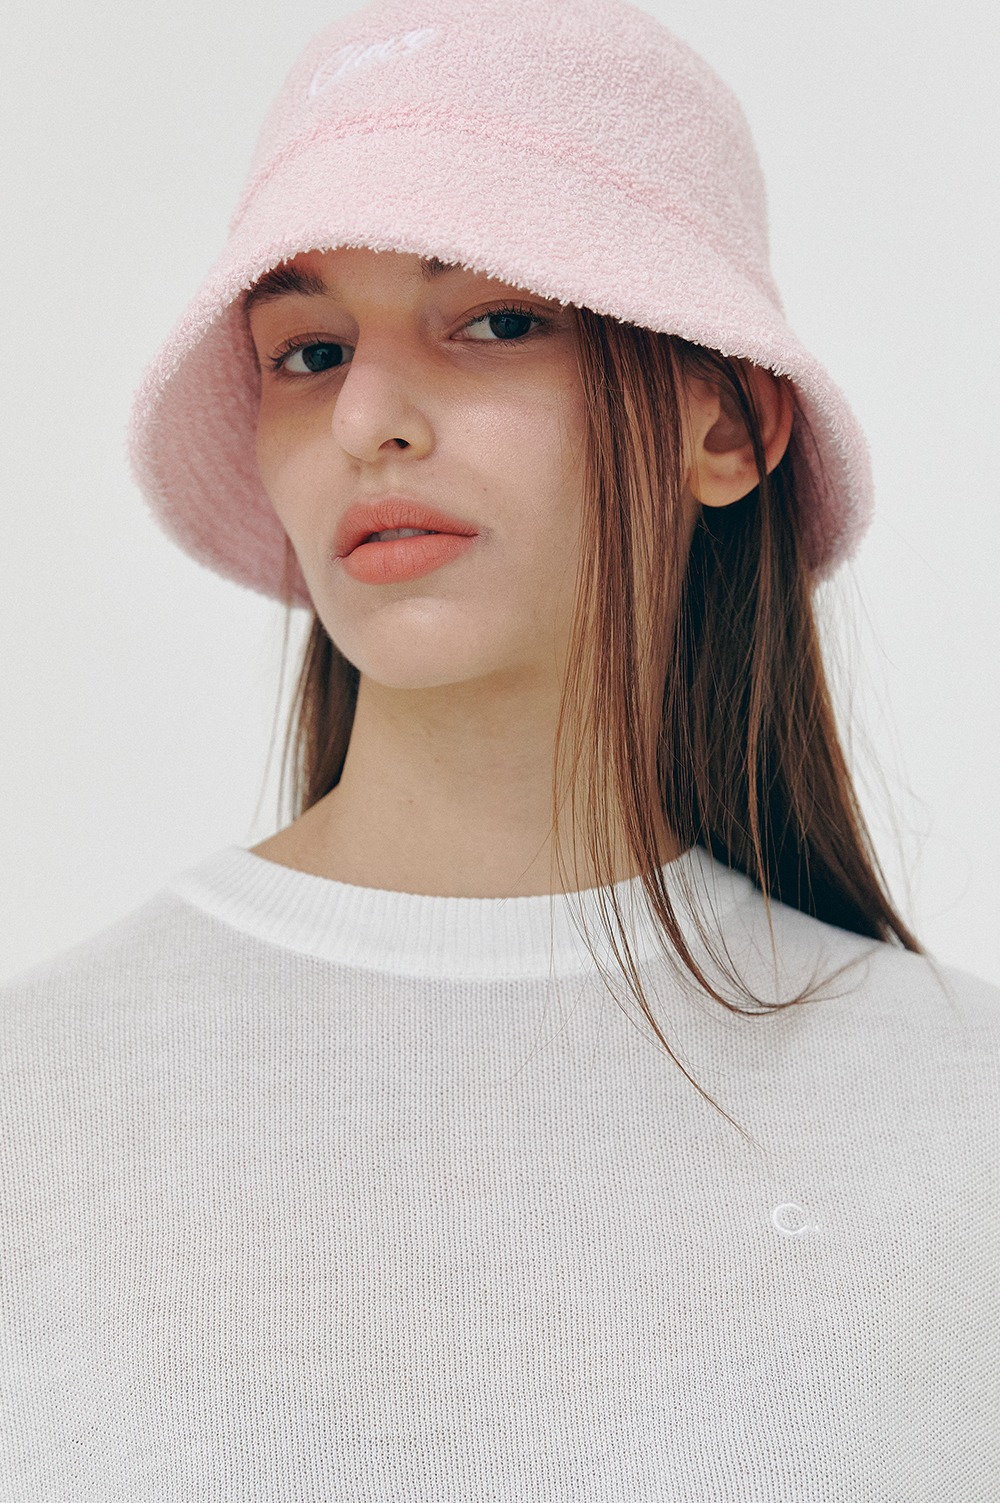 clove - [5/21(금) 예약배송][SS21 clove] Terry Bucket Hat Pink